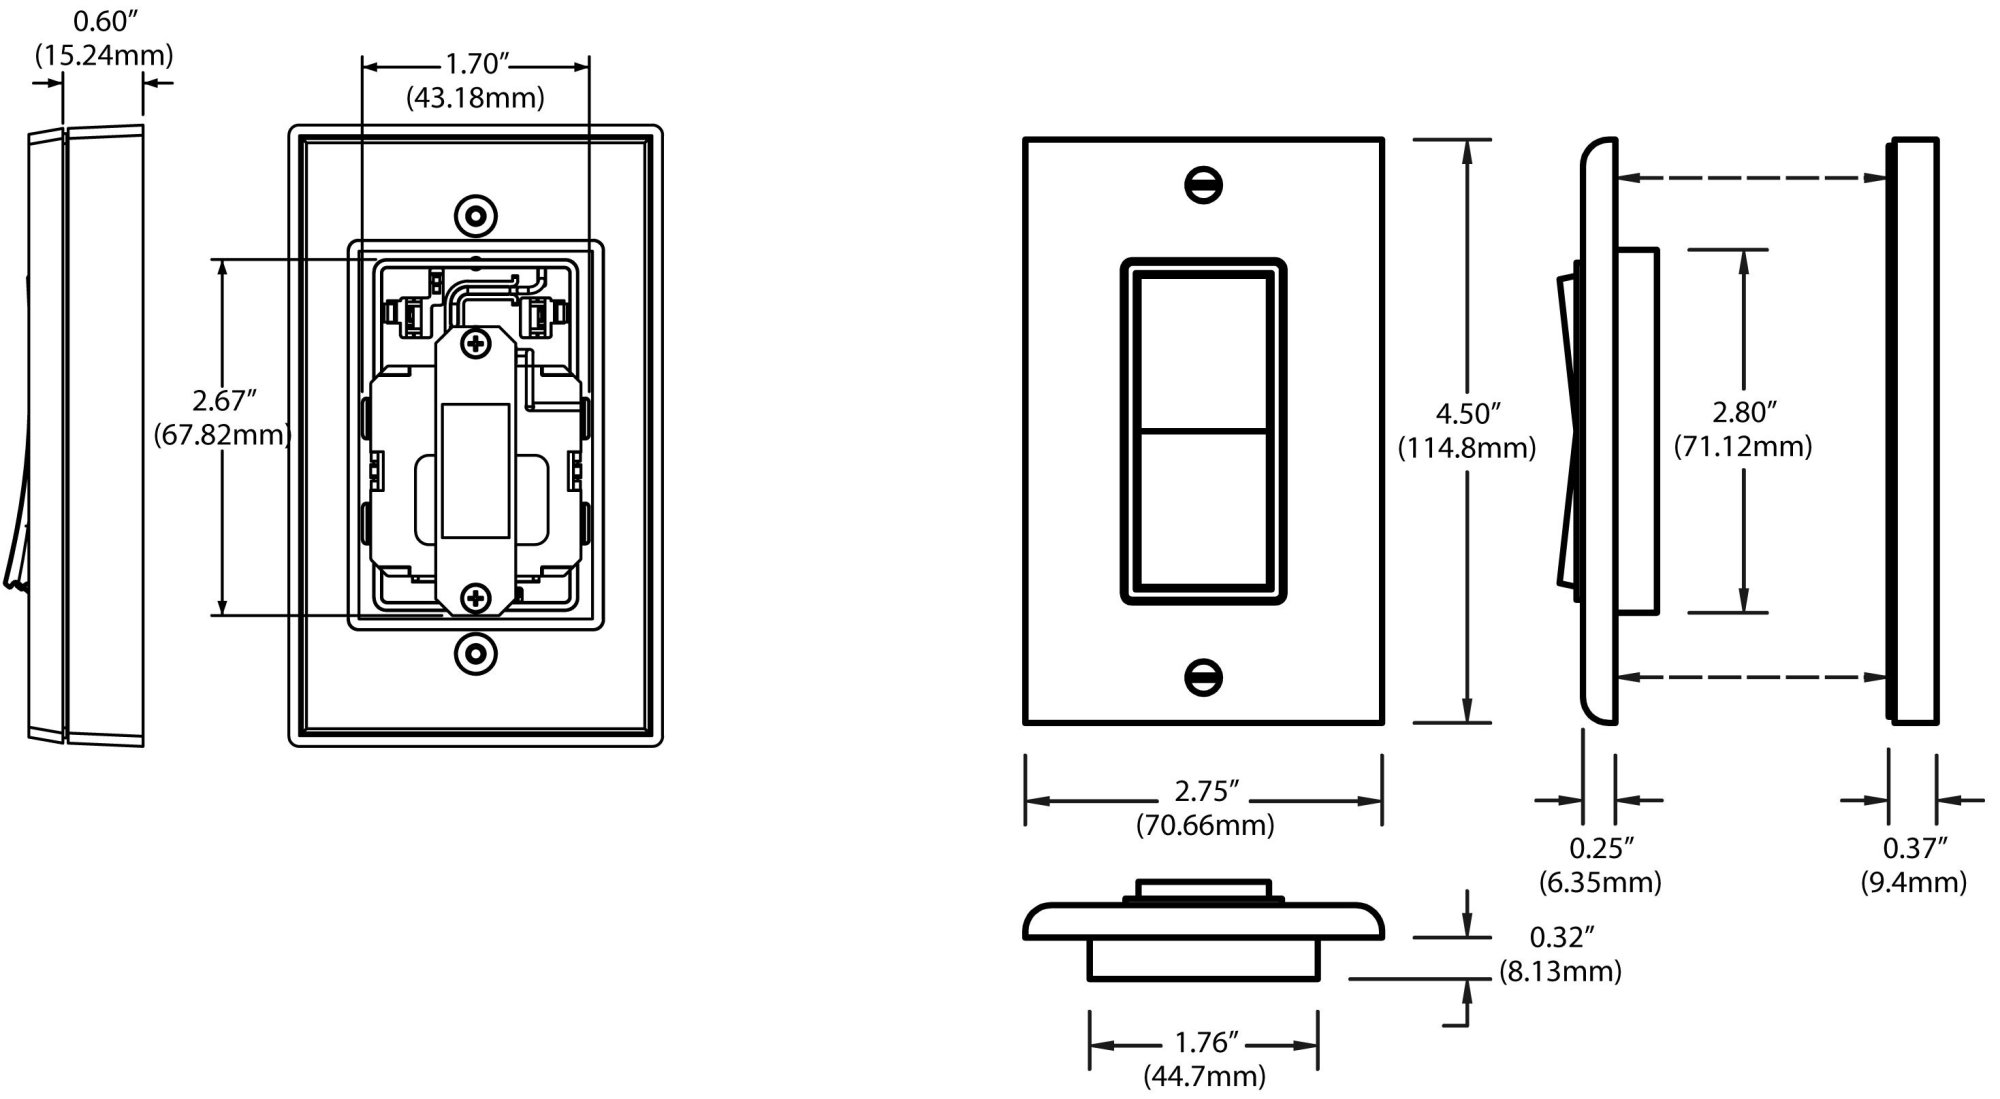 hight resolution of leviton 3 way switch wiring diagram leviton 3 way dimmer switches 4